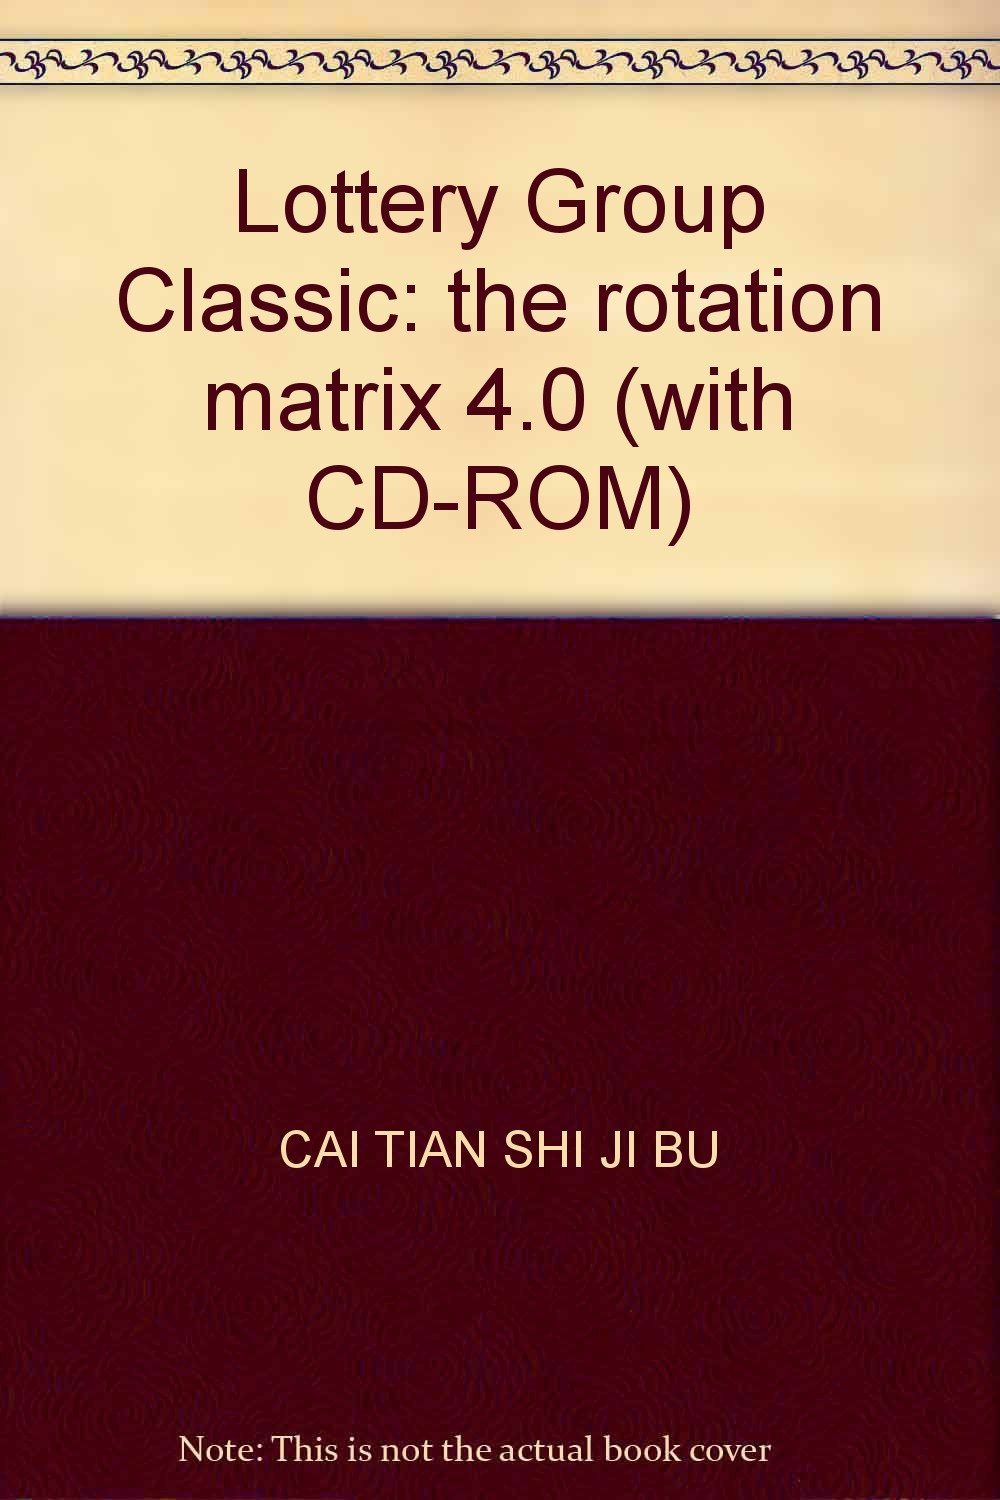 Product Rotation Matrix The Rotation Matrix 4.0